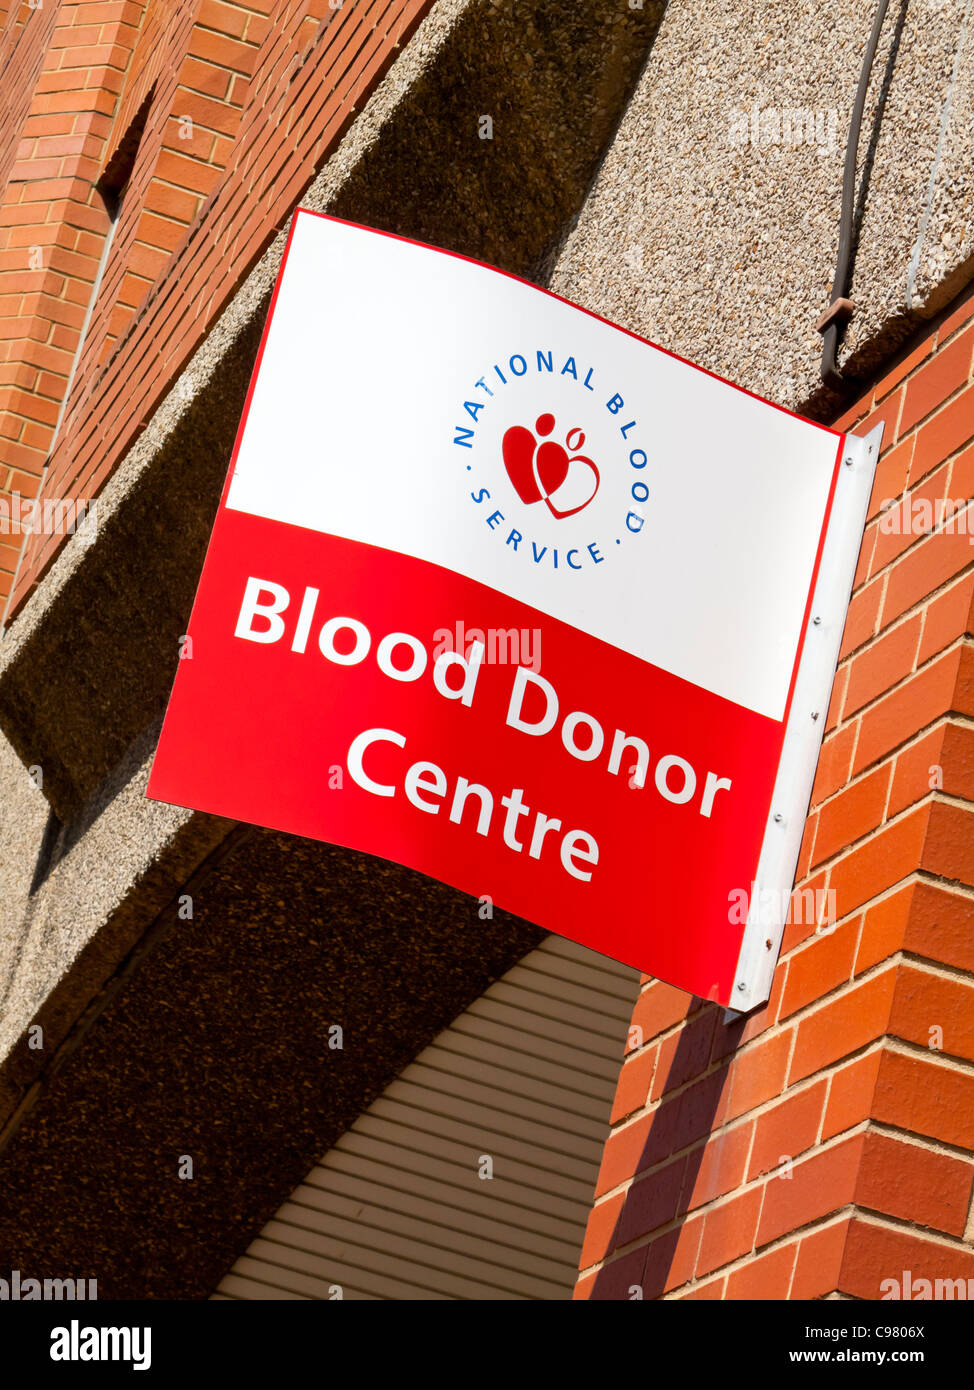 Blood Donor Centre sign outside National Blood Service premises in Sheffield UK used to collect blood for hospital - Stock Image